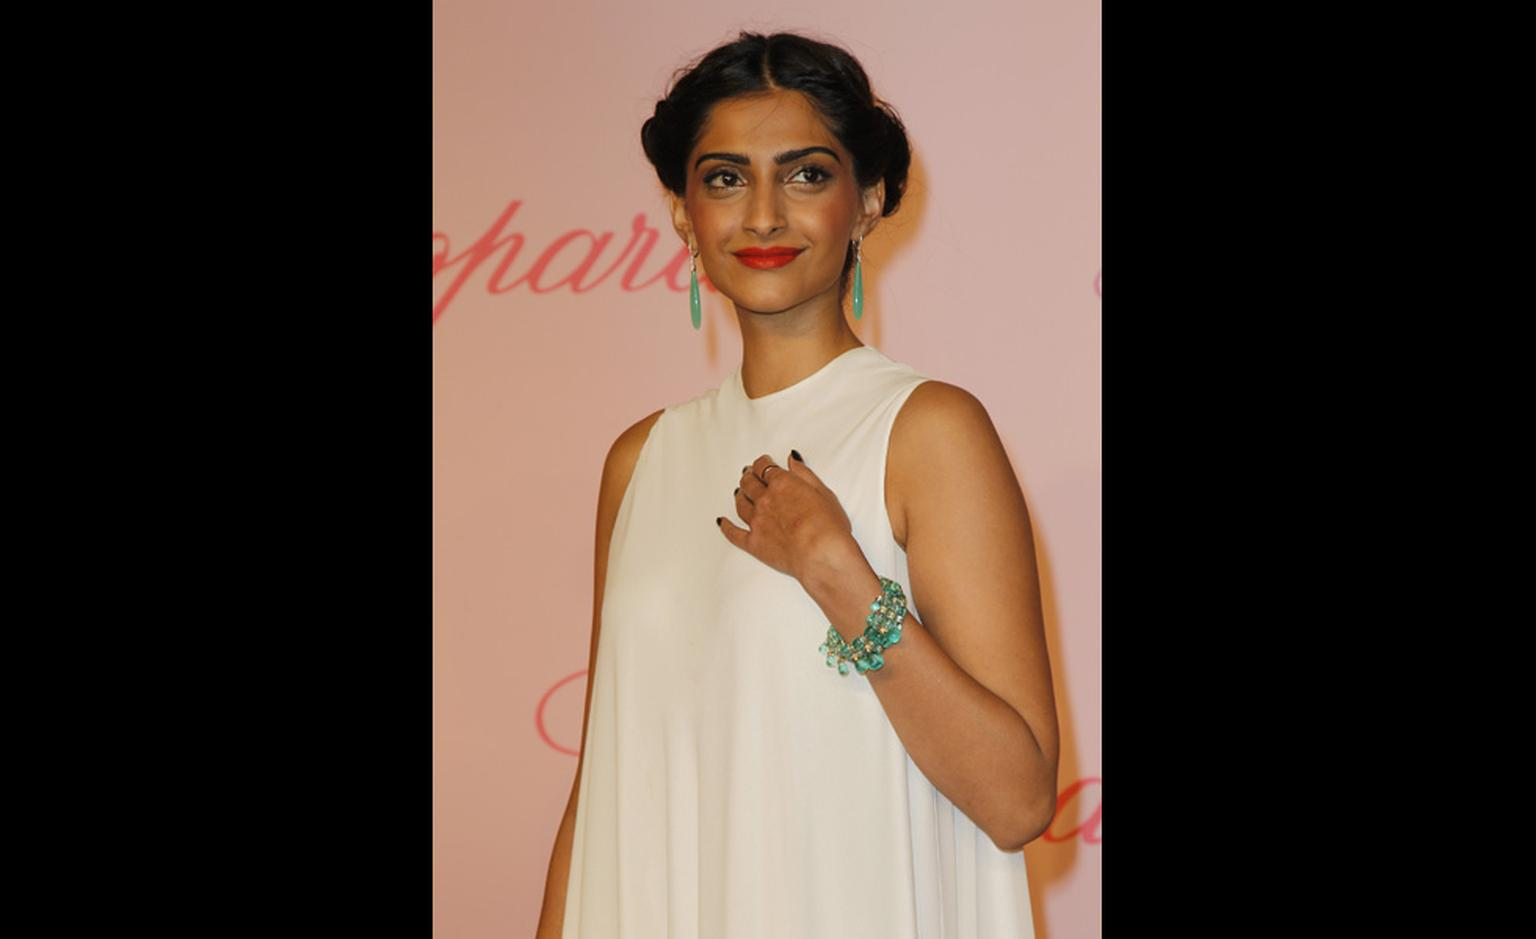 Sonam Kapoor at Chopard's Crazy Horse party at the Cannes Film Festival 2011 wearing Chopard jewels.